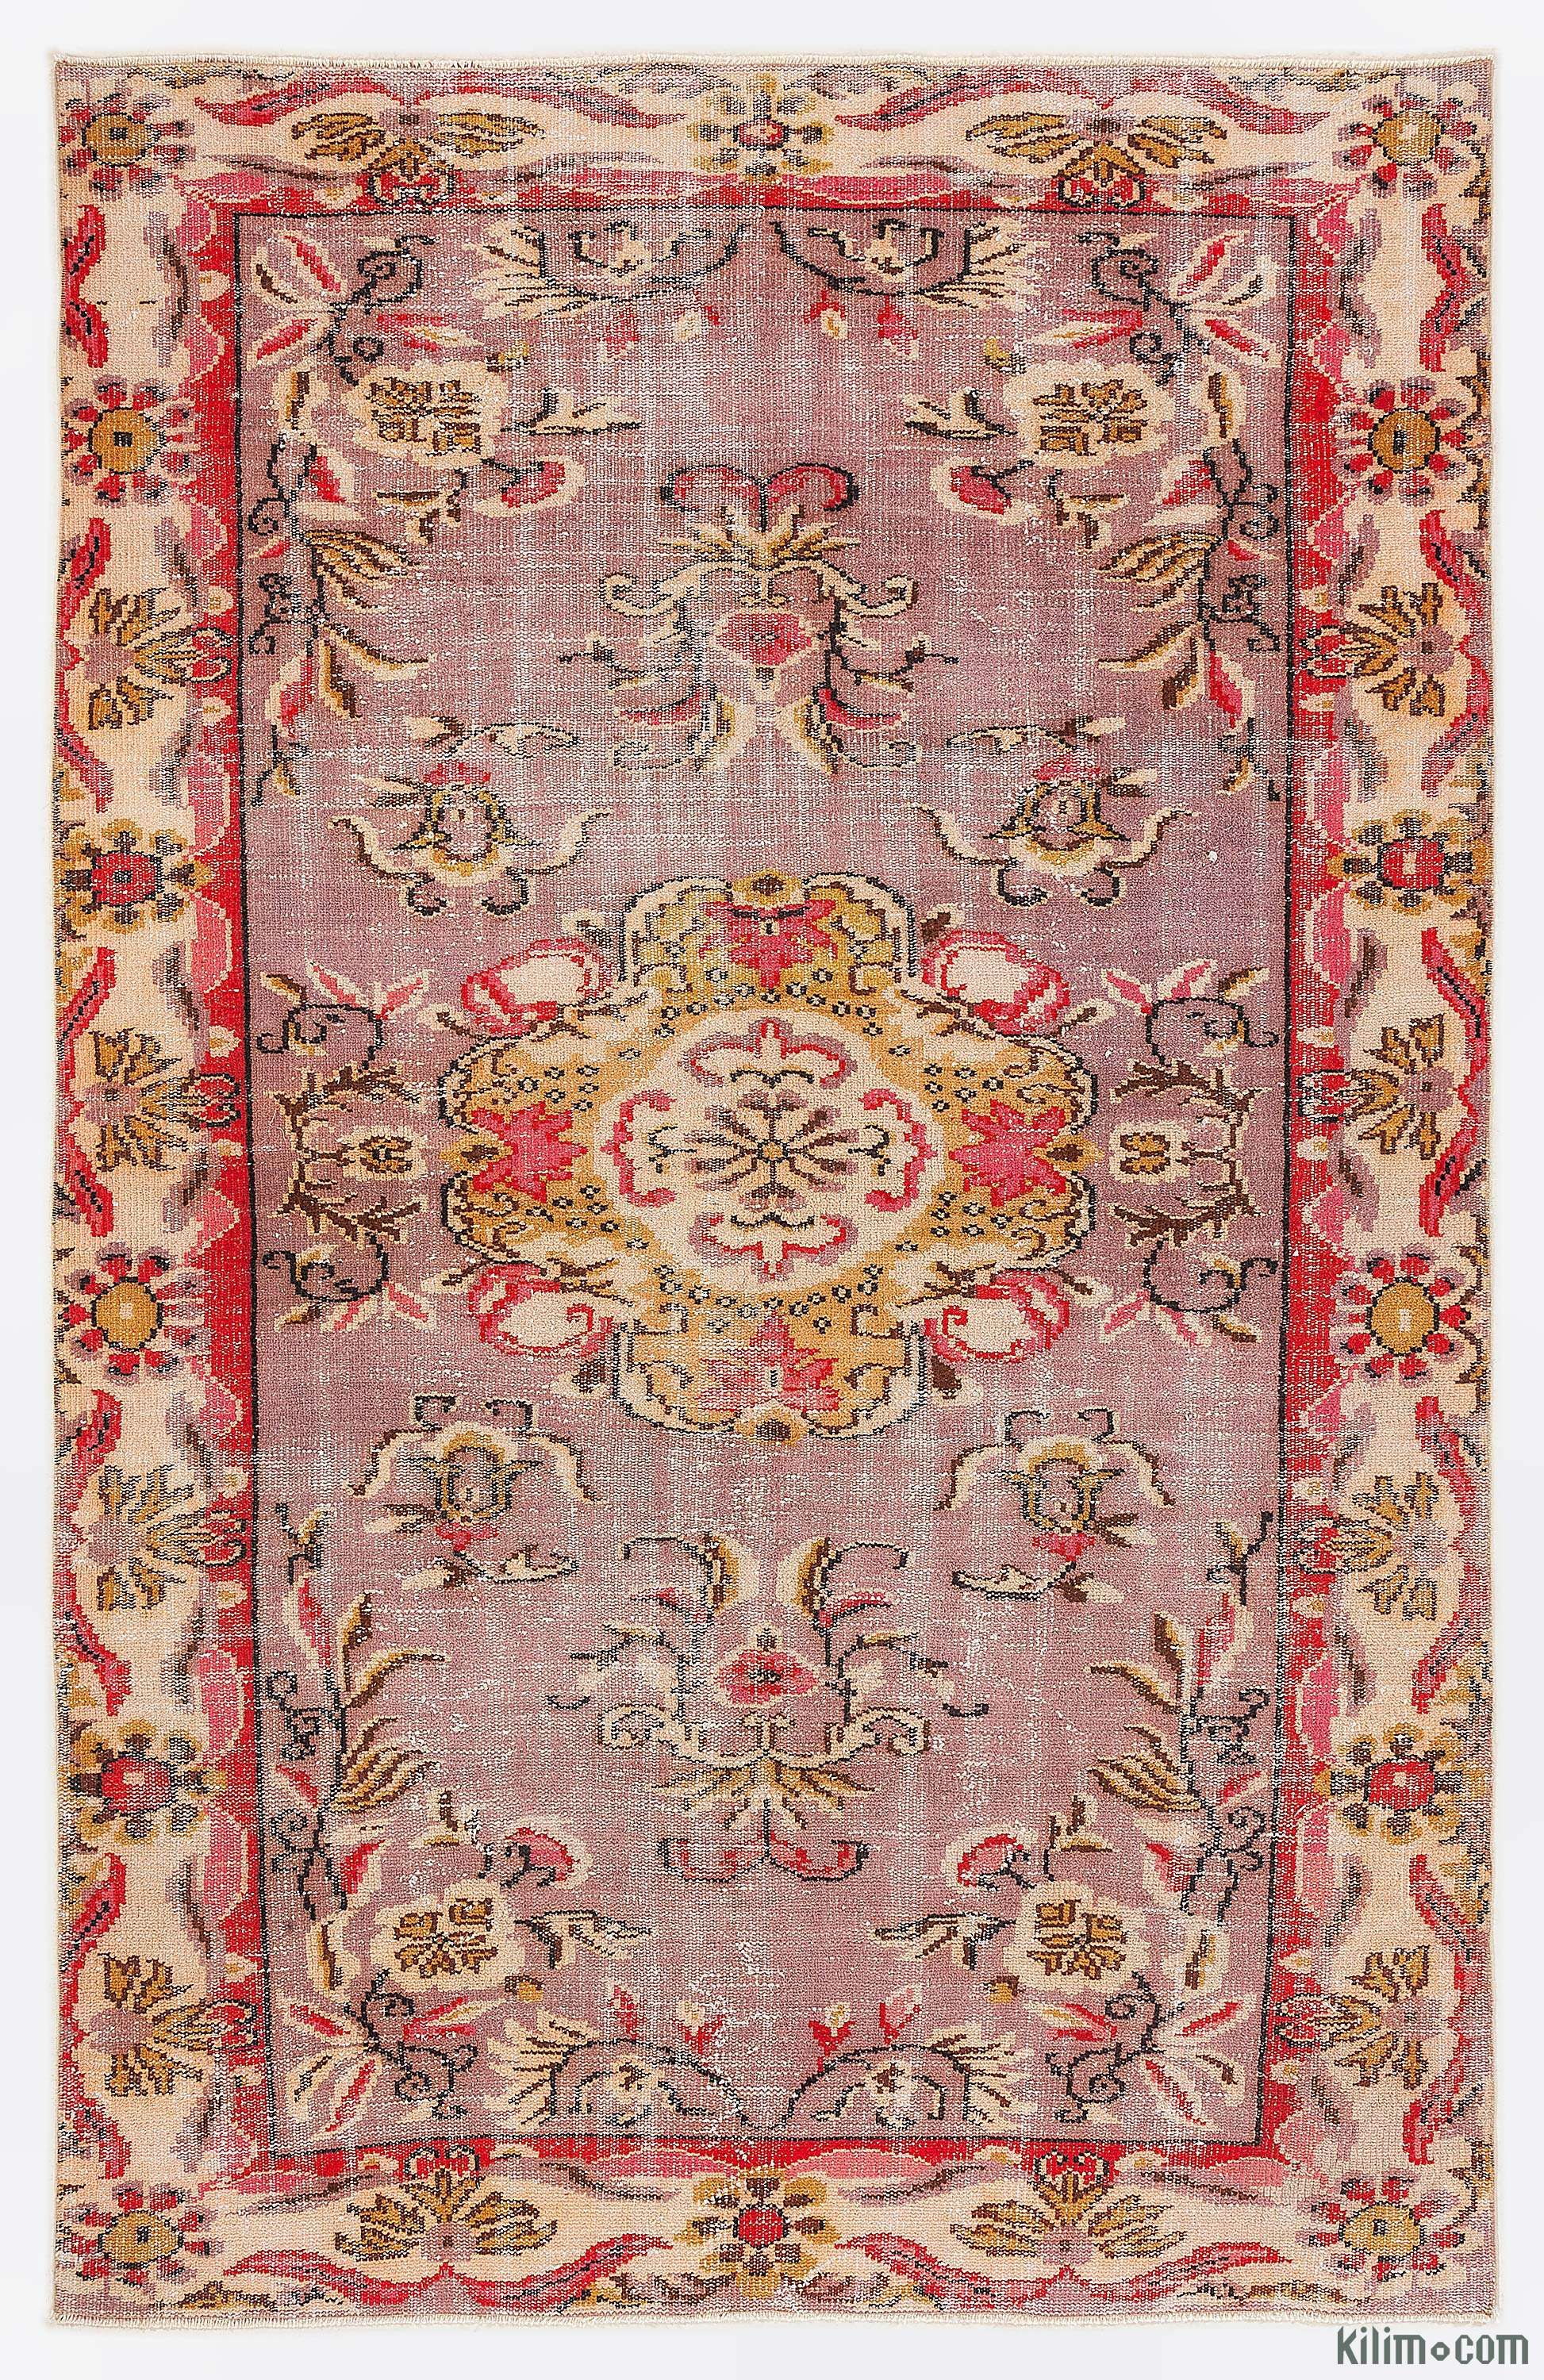 Purple Turkish Vintage Area Rug 5 10 X 9 1 70 In X 109 In K0009971 Vintage Rugs Rugs On Carpet Vintage Area Rugs